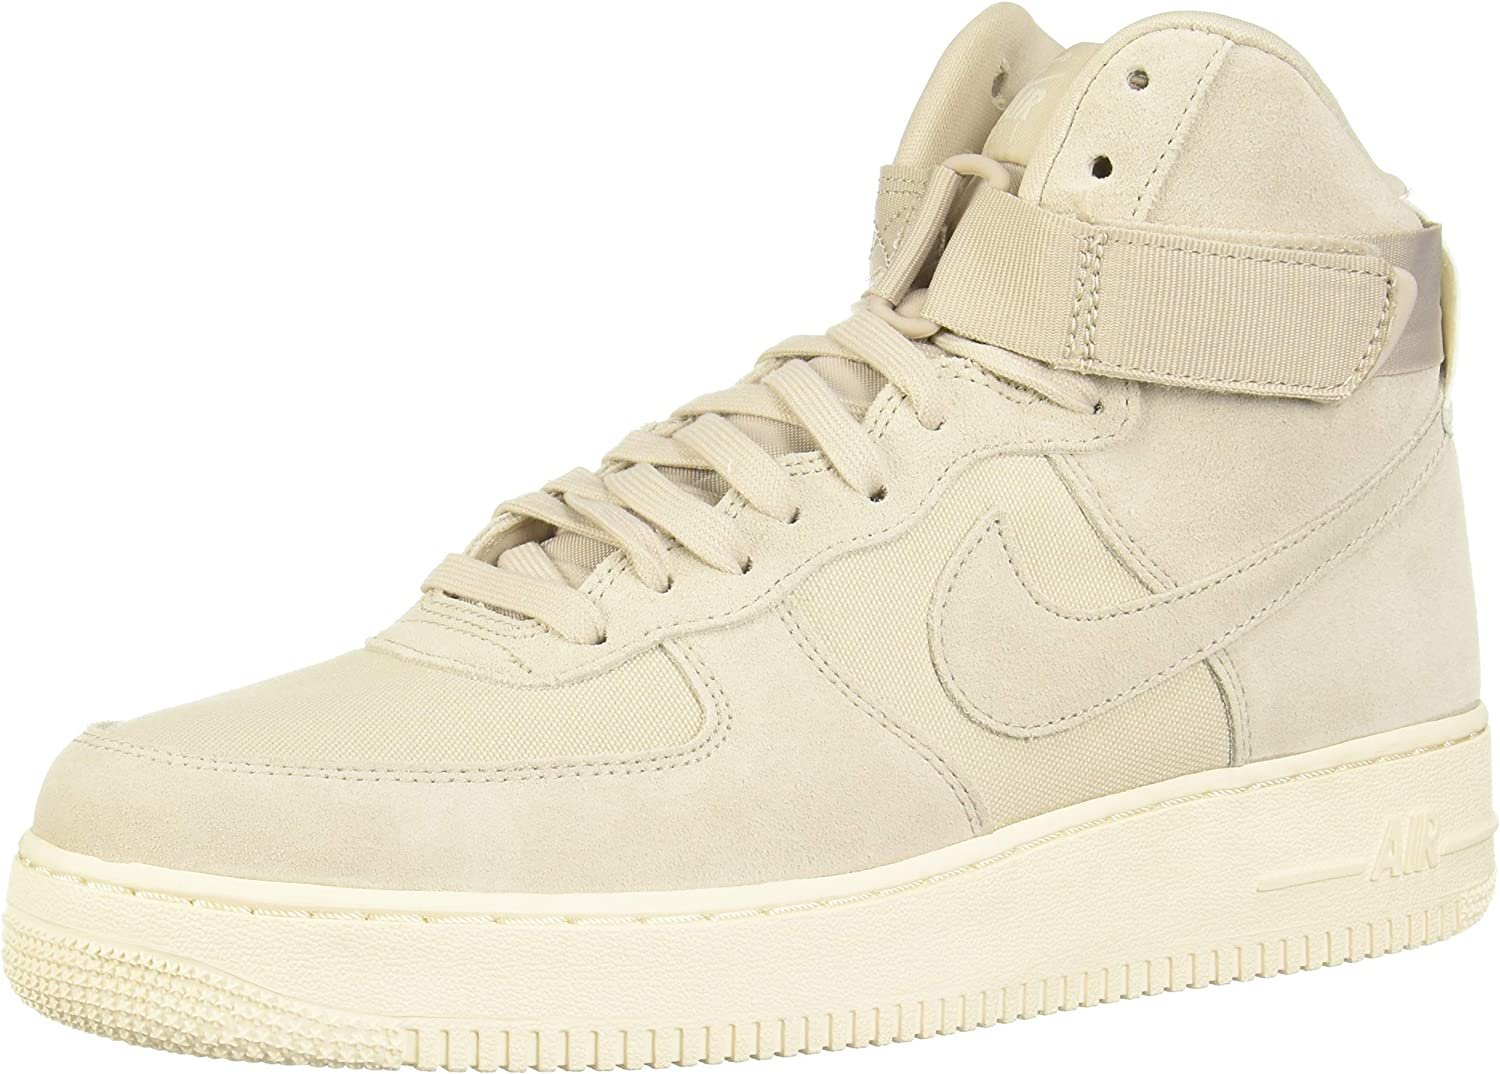 4e129a64f277 Nike Men's Air Force Force Force 1 High '07 Suede Gymnastics shoes ...